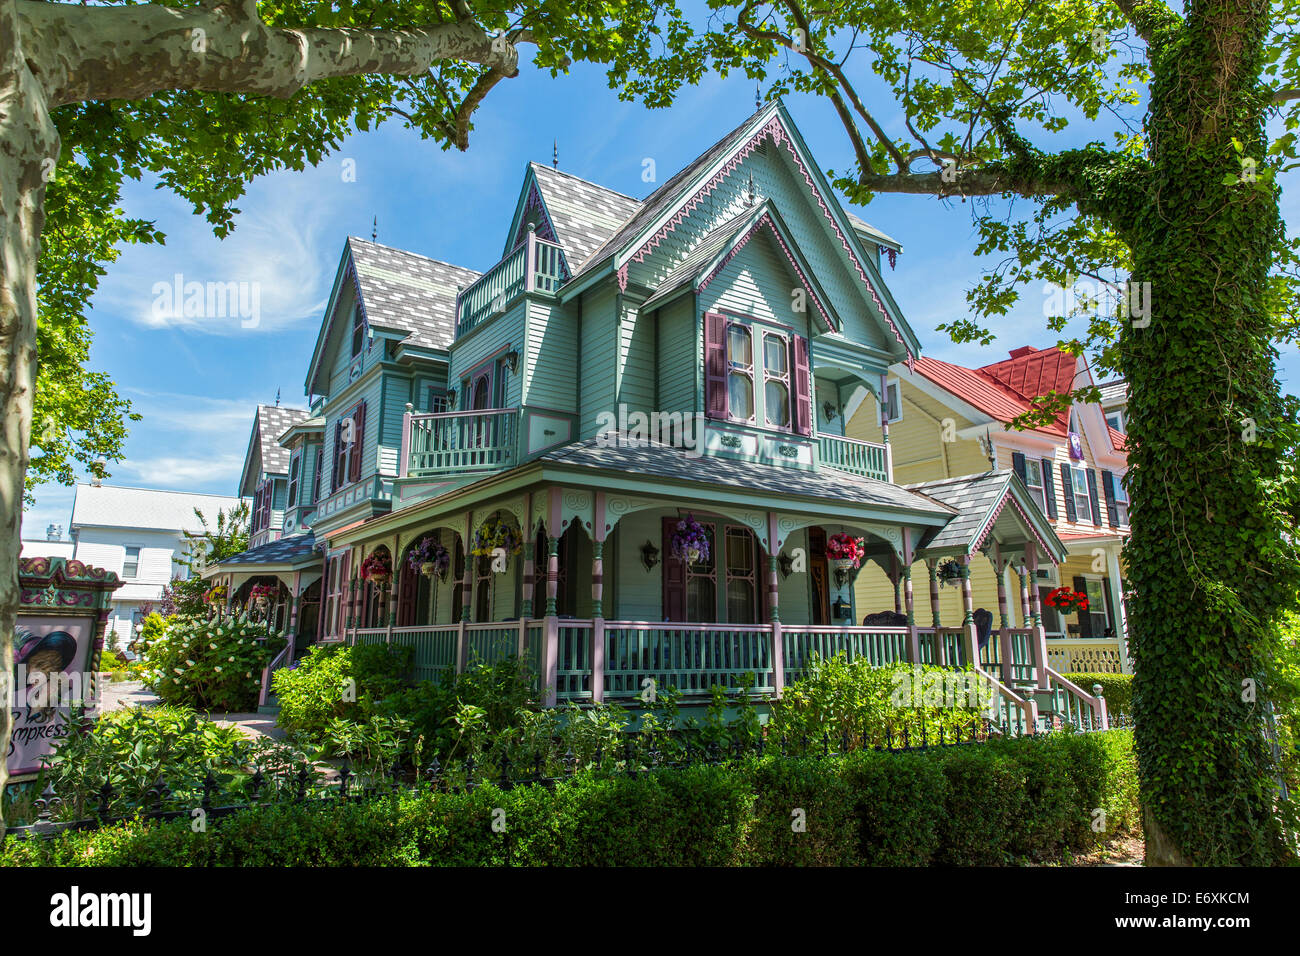 USA,New Jersey,Cape May, l'Impératrice bed and breakfast Photo Stock